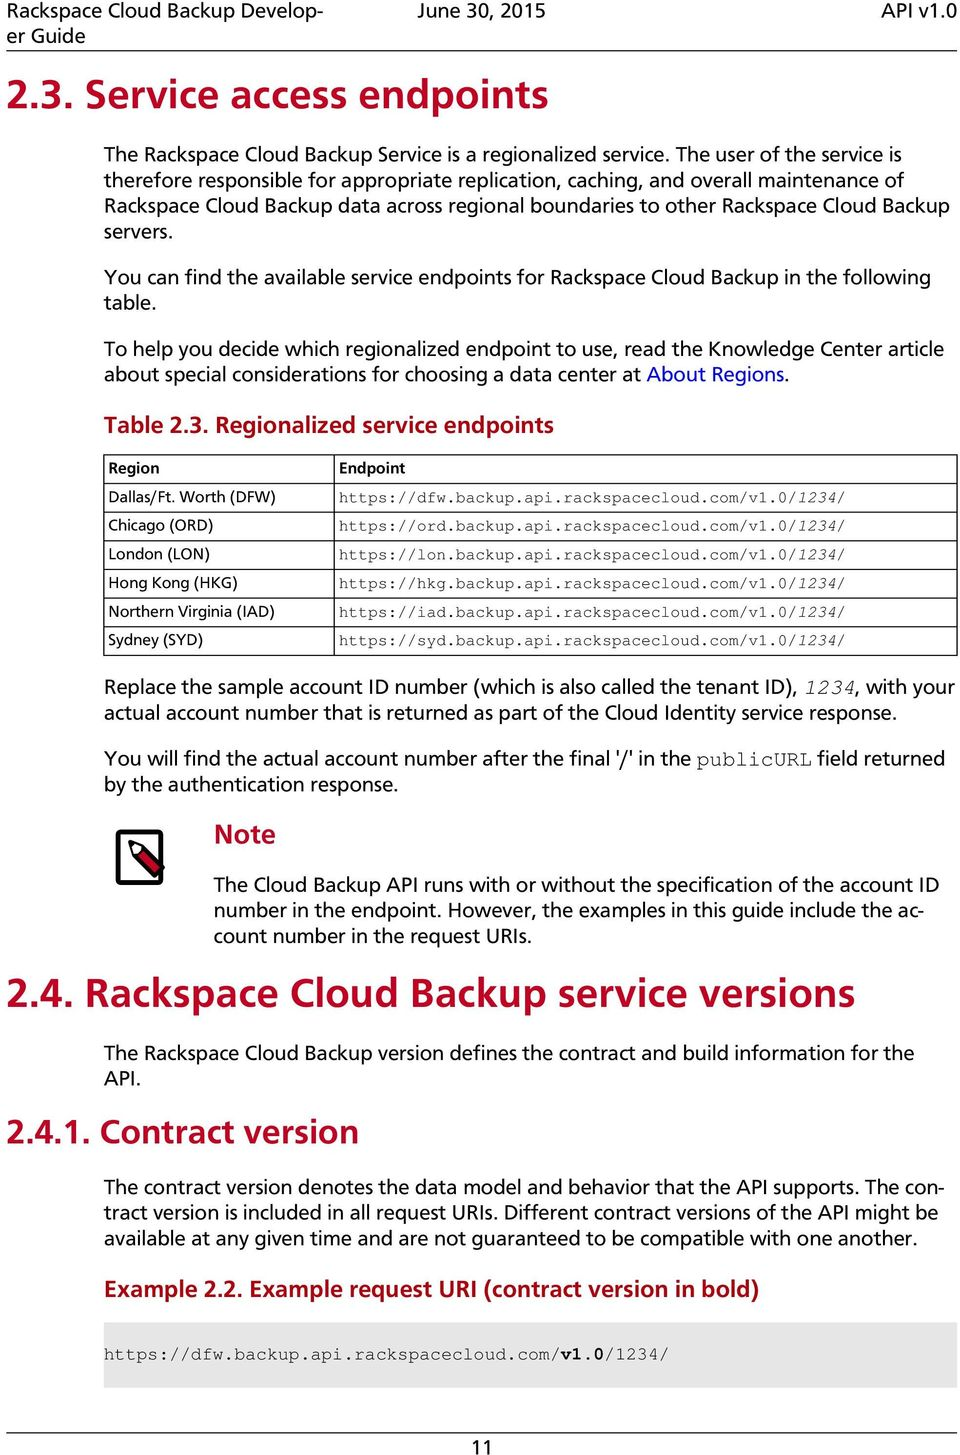 Backup servers. You can find the available service endpoints for Rackspace Cloud Backup in the following table.